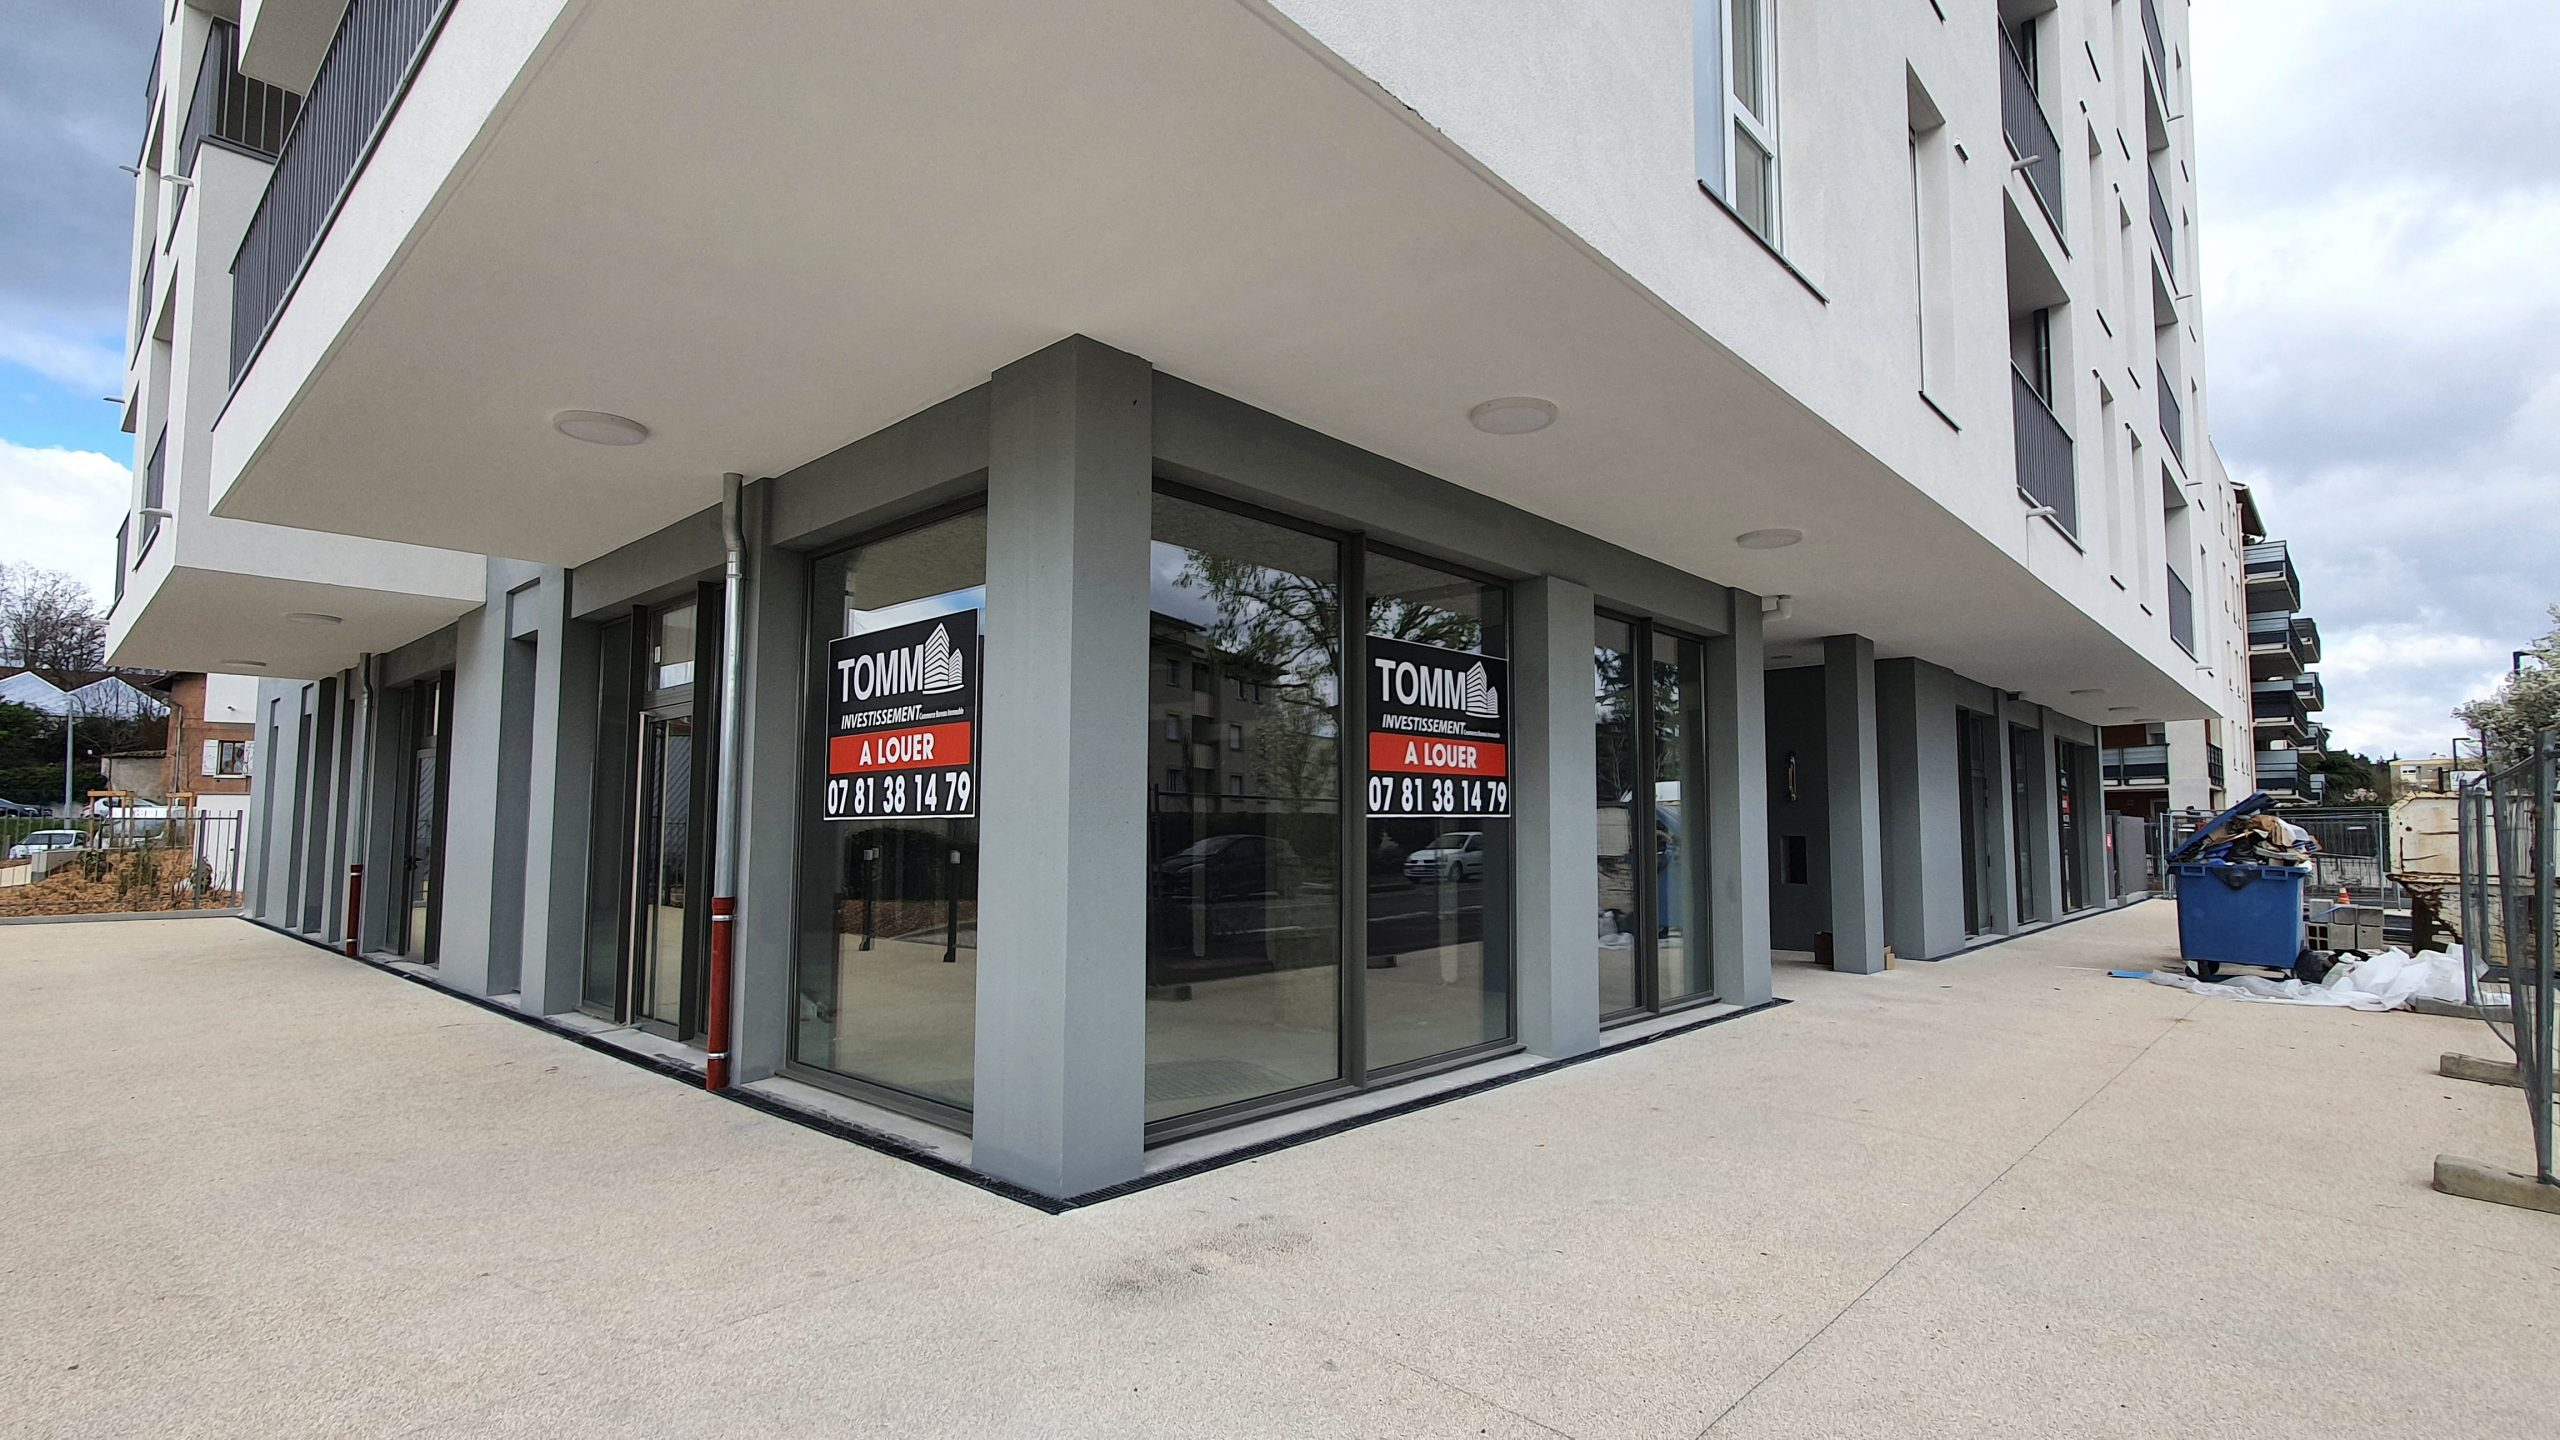 A LOUER – Local commercial – 183 m² – BOULEVARD DE L'EUROPE – PIERRE BENITE 69310